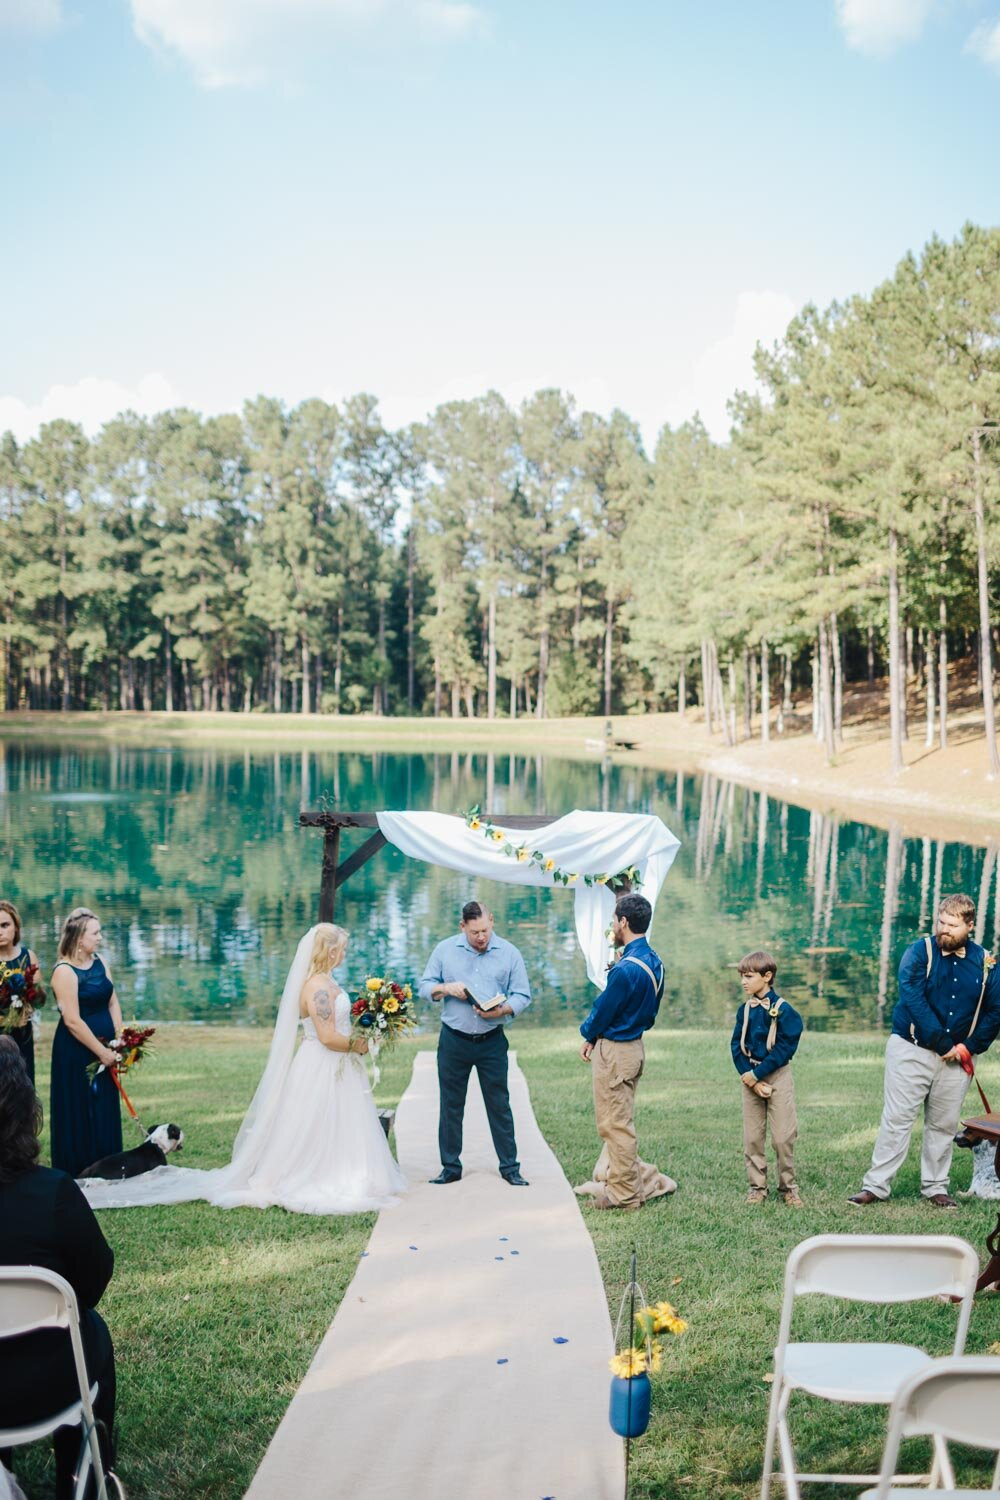 Alabama Wedding Photography at Starwood II in Jemison by David A. Smith of DSmithImages Wedding Photography, Portraits, and Events, a wedding photographer in Birmingham, Alabama.